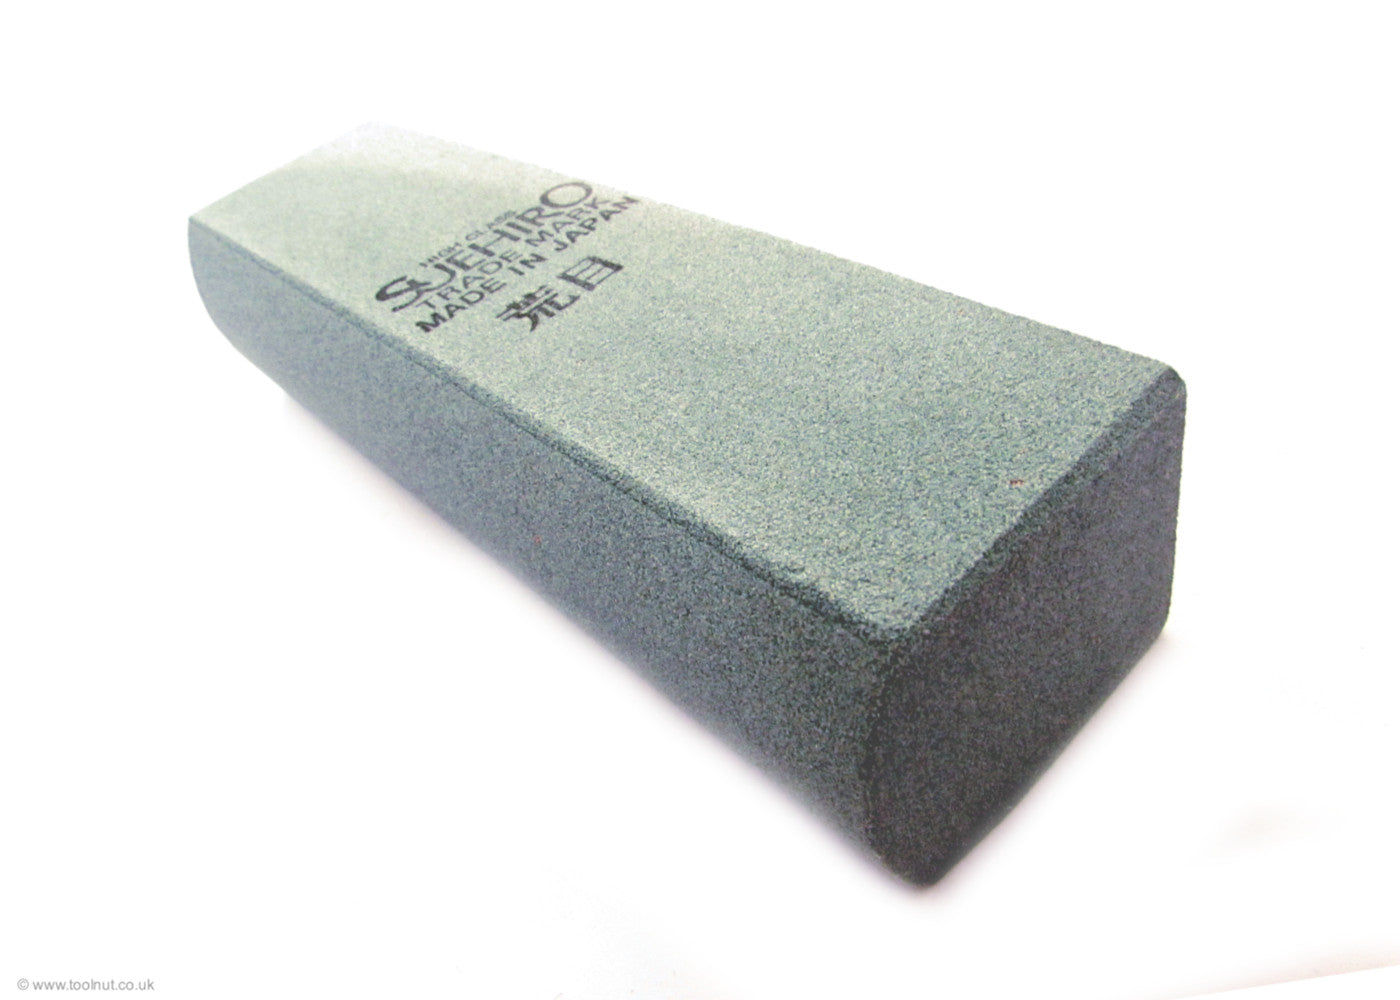 Japanese Curved Sharpening Stones